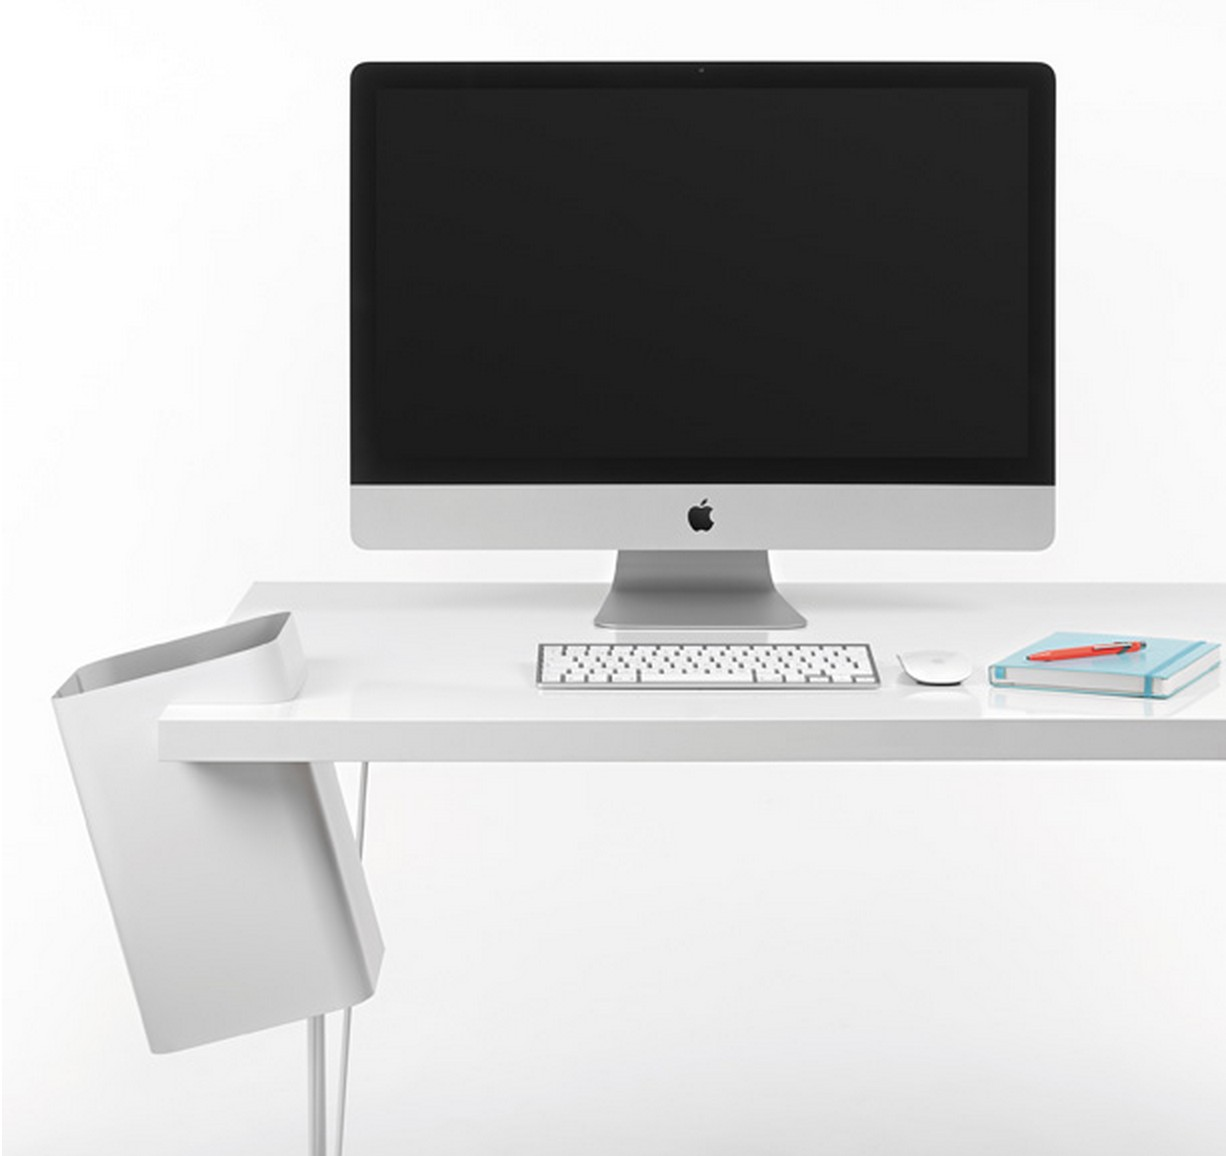 Poubelle de table par crous calogero blog d co design - Poubelle bureau enfant ...